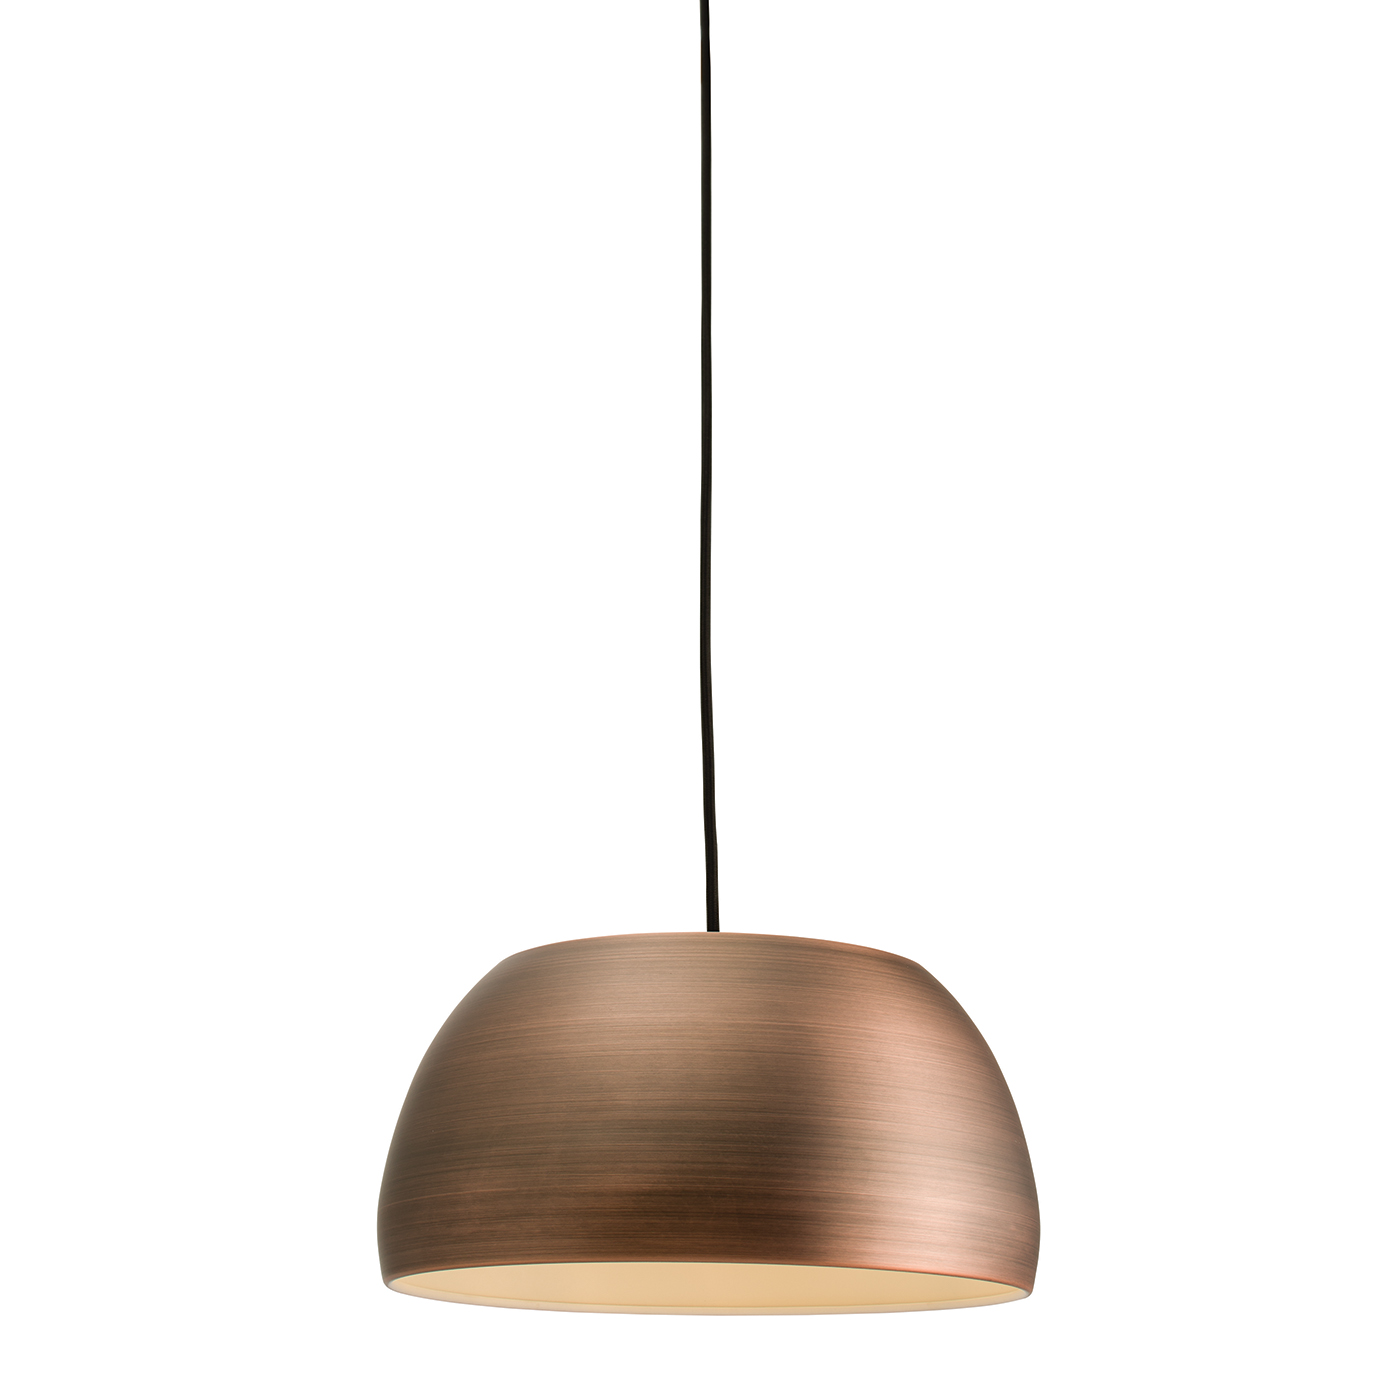 Endon Connery pendant 1x 60W Matt bronze effect plate Thumbnail 1